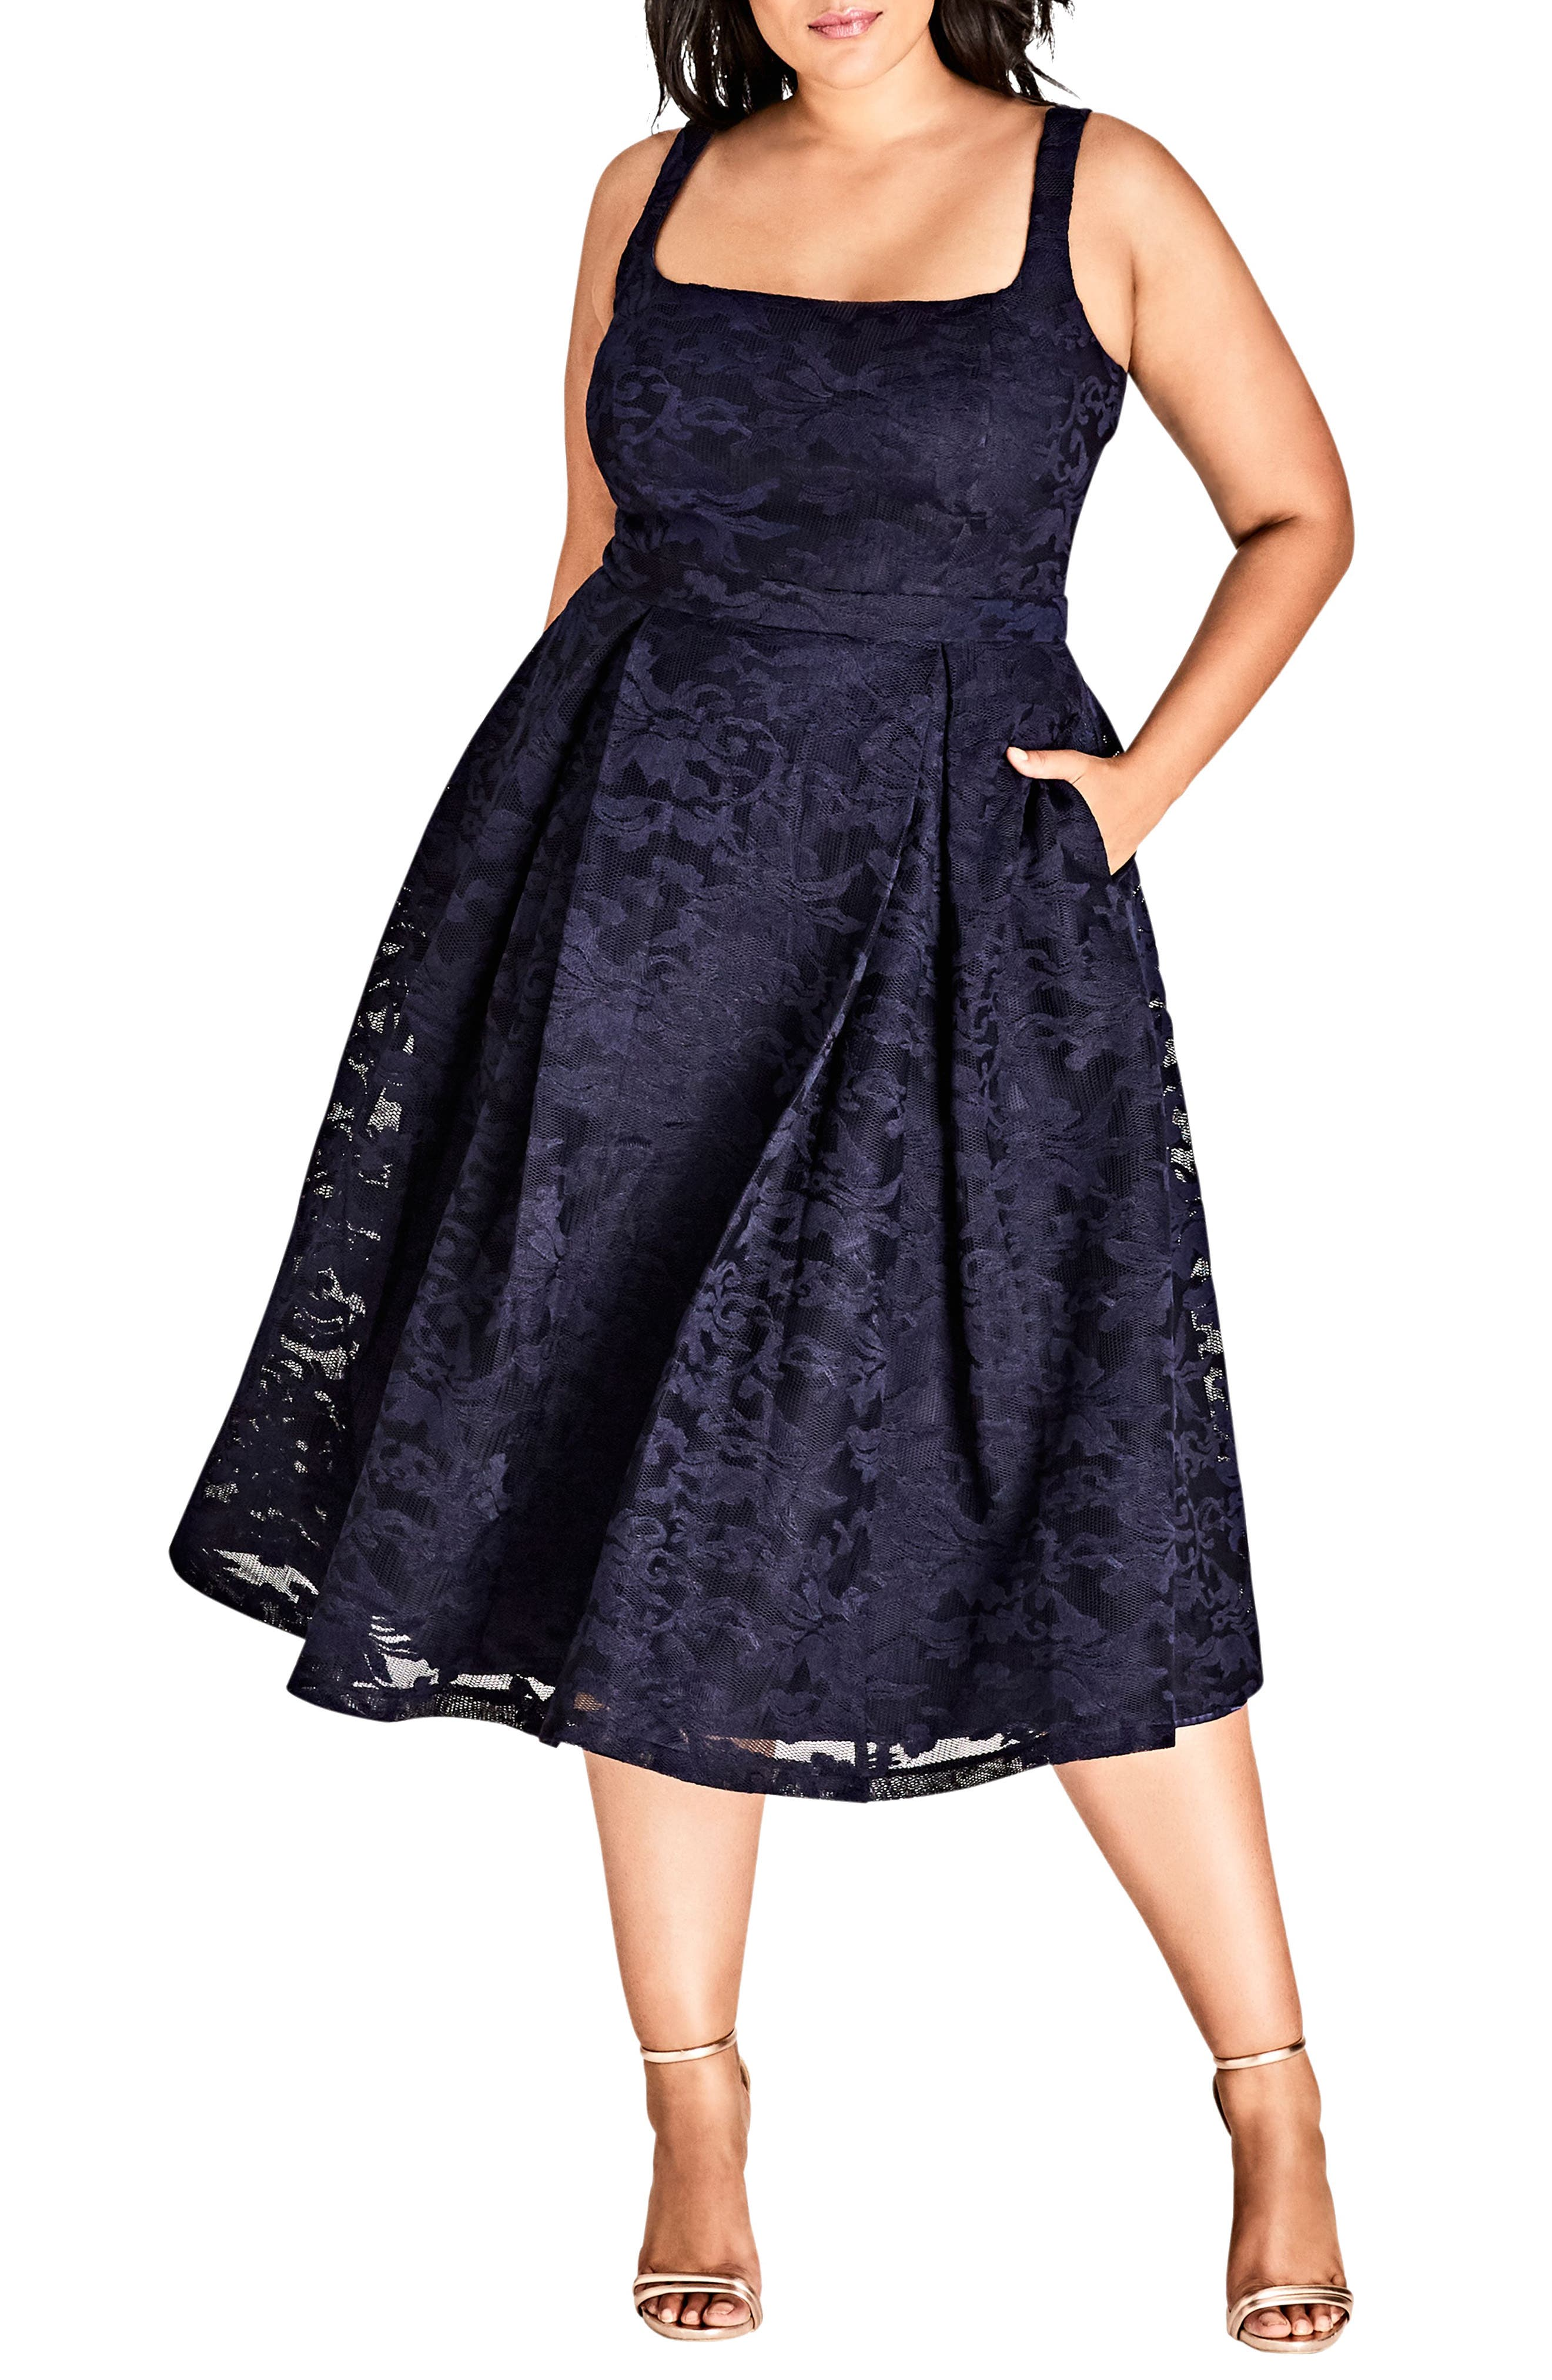 Jackie O Lace Fit & Flare Dress in Navy